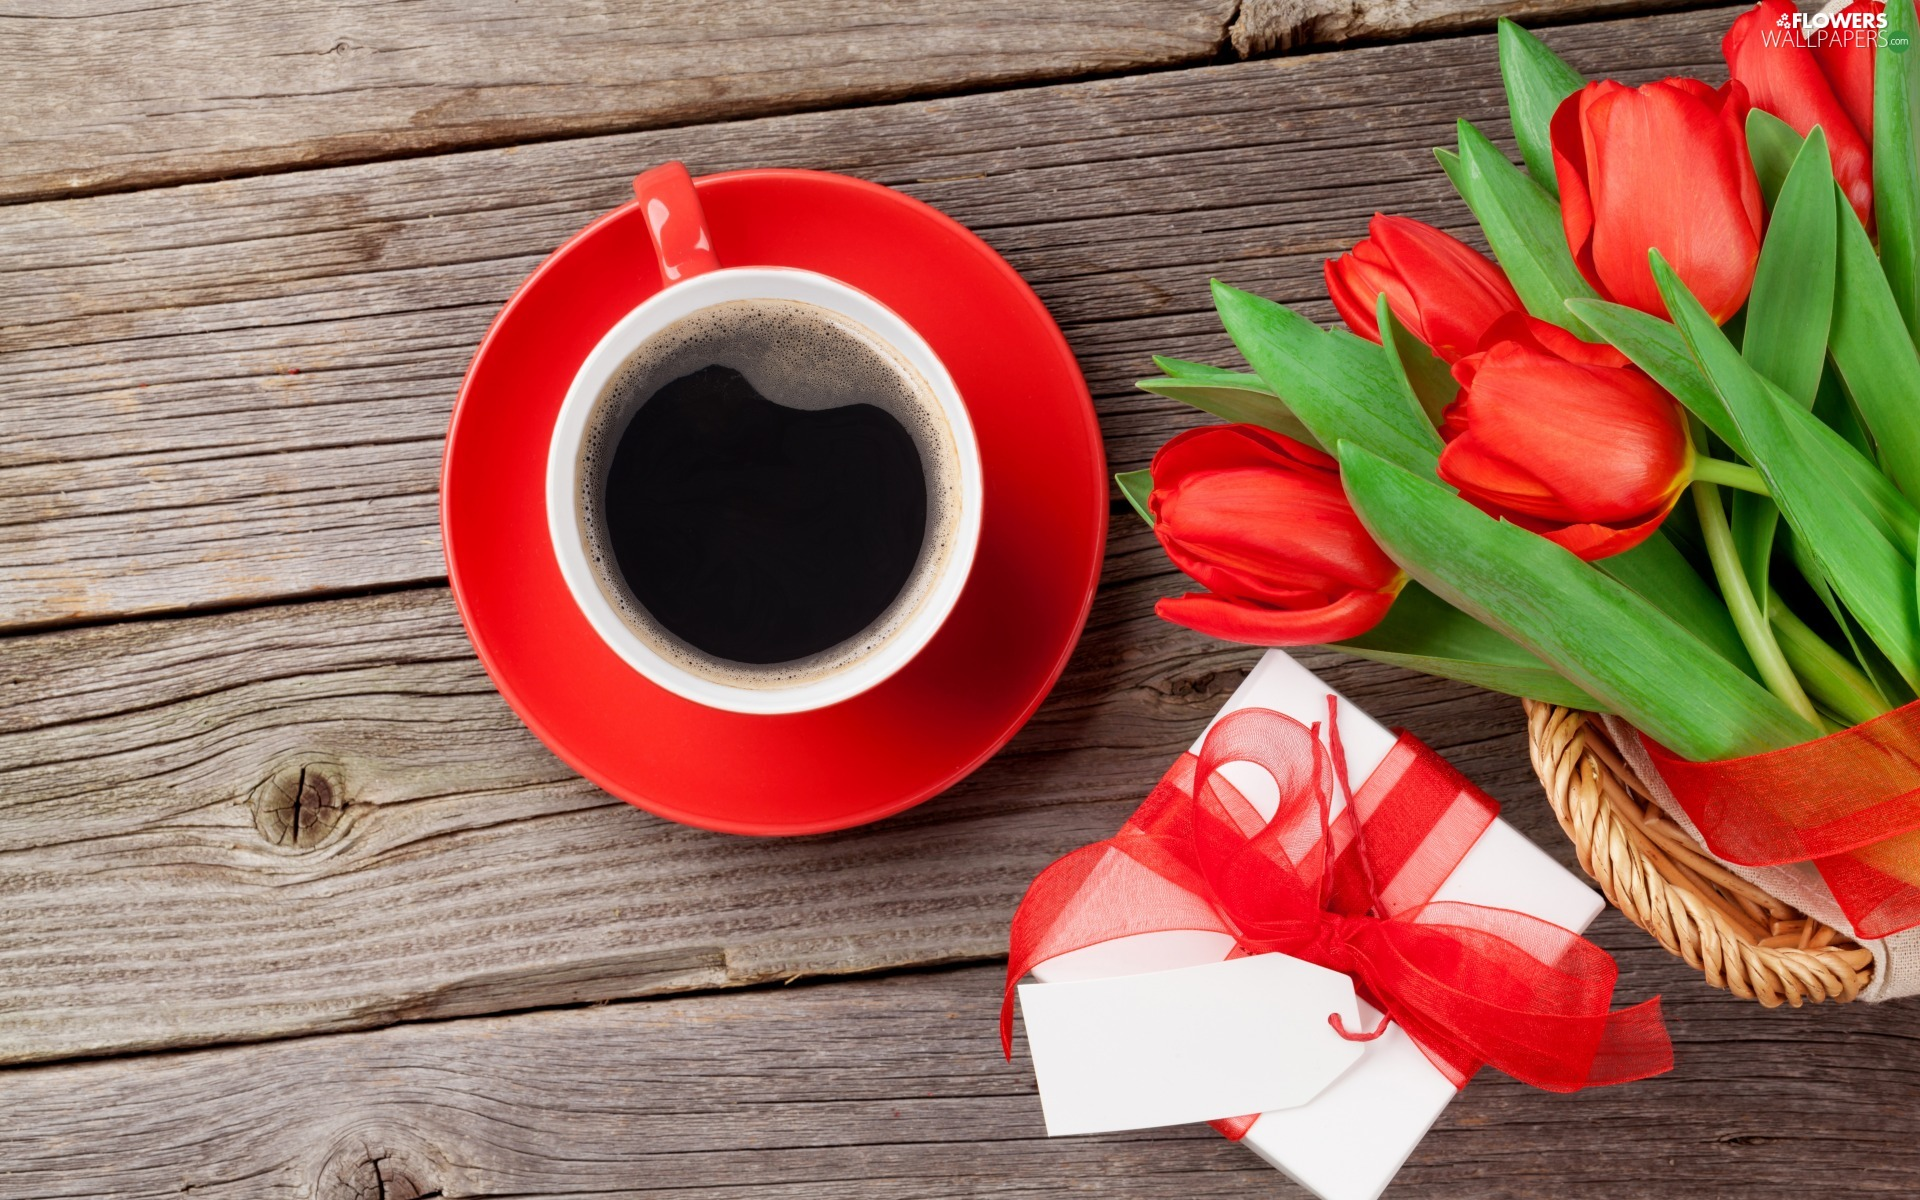 Present, Flowers, cup, coffee, bow, card, boarding, Red, Tulips, basket, plate